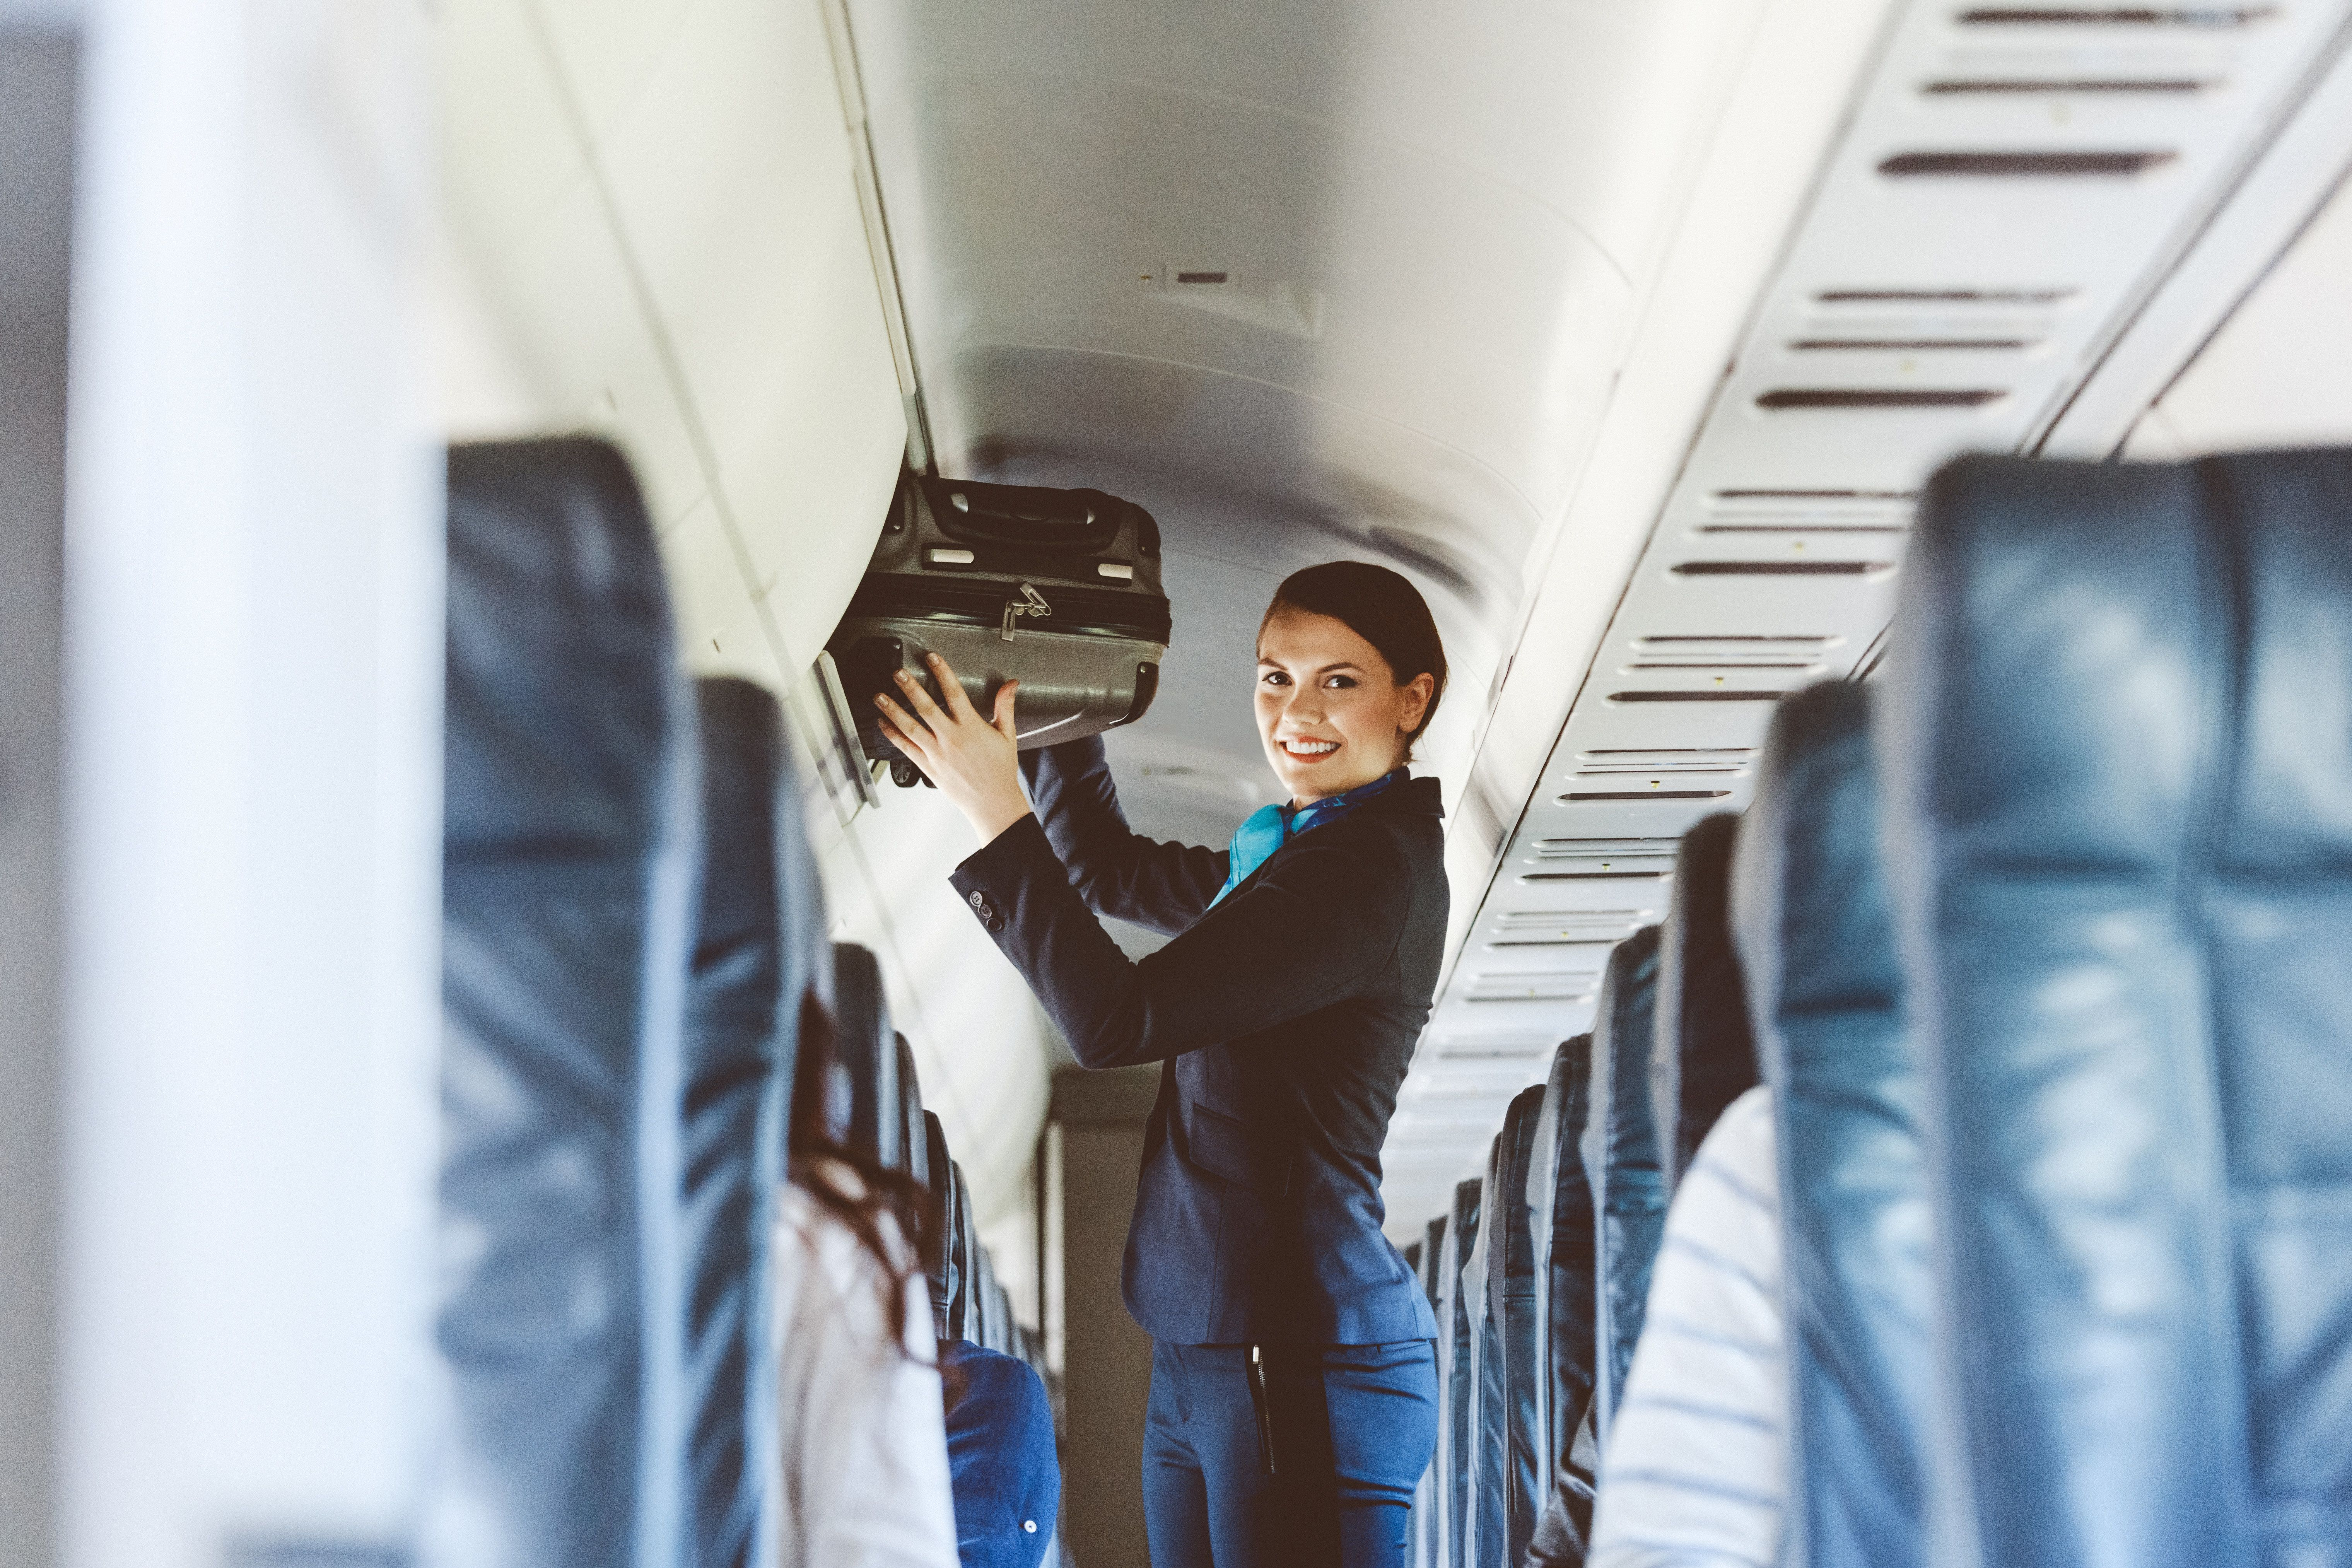 Beautiful air stewardess inside an airplane holding suitcase, smiling at the camera.